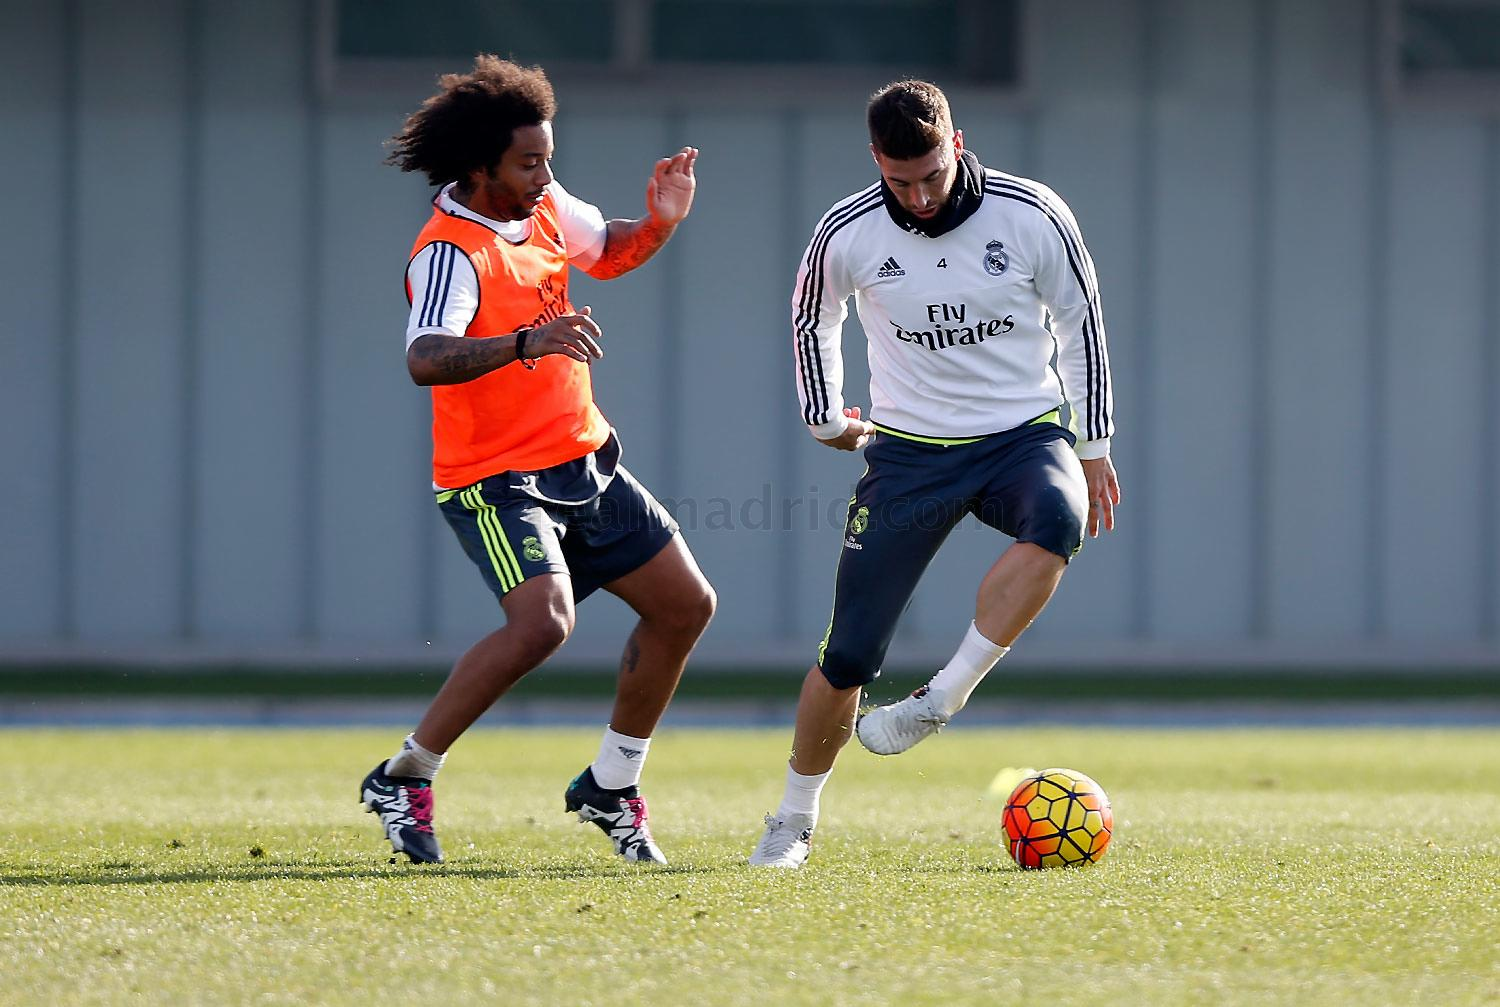 Real Madrid - Entrenamiento del Real Madrid - 10-12-2015